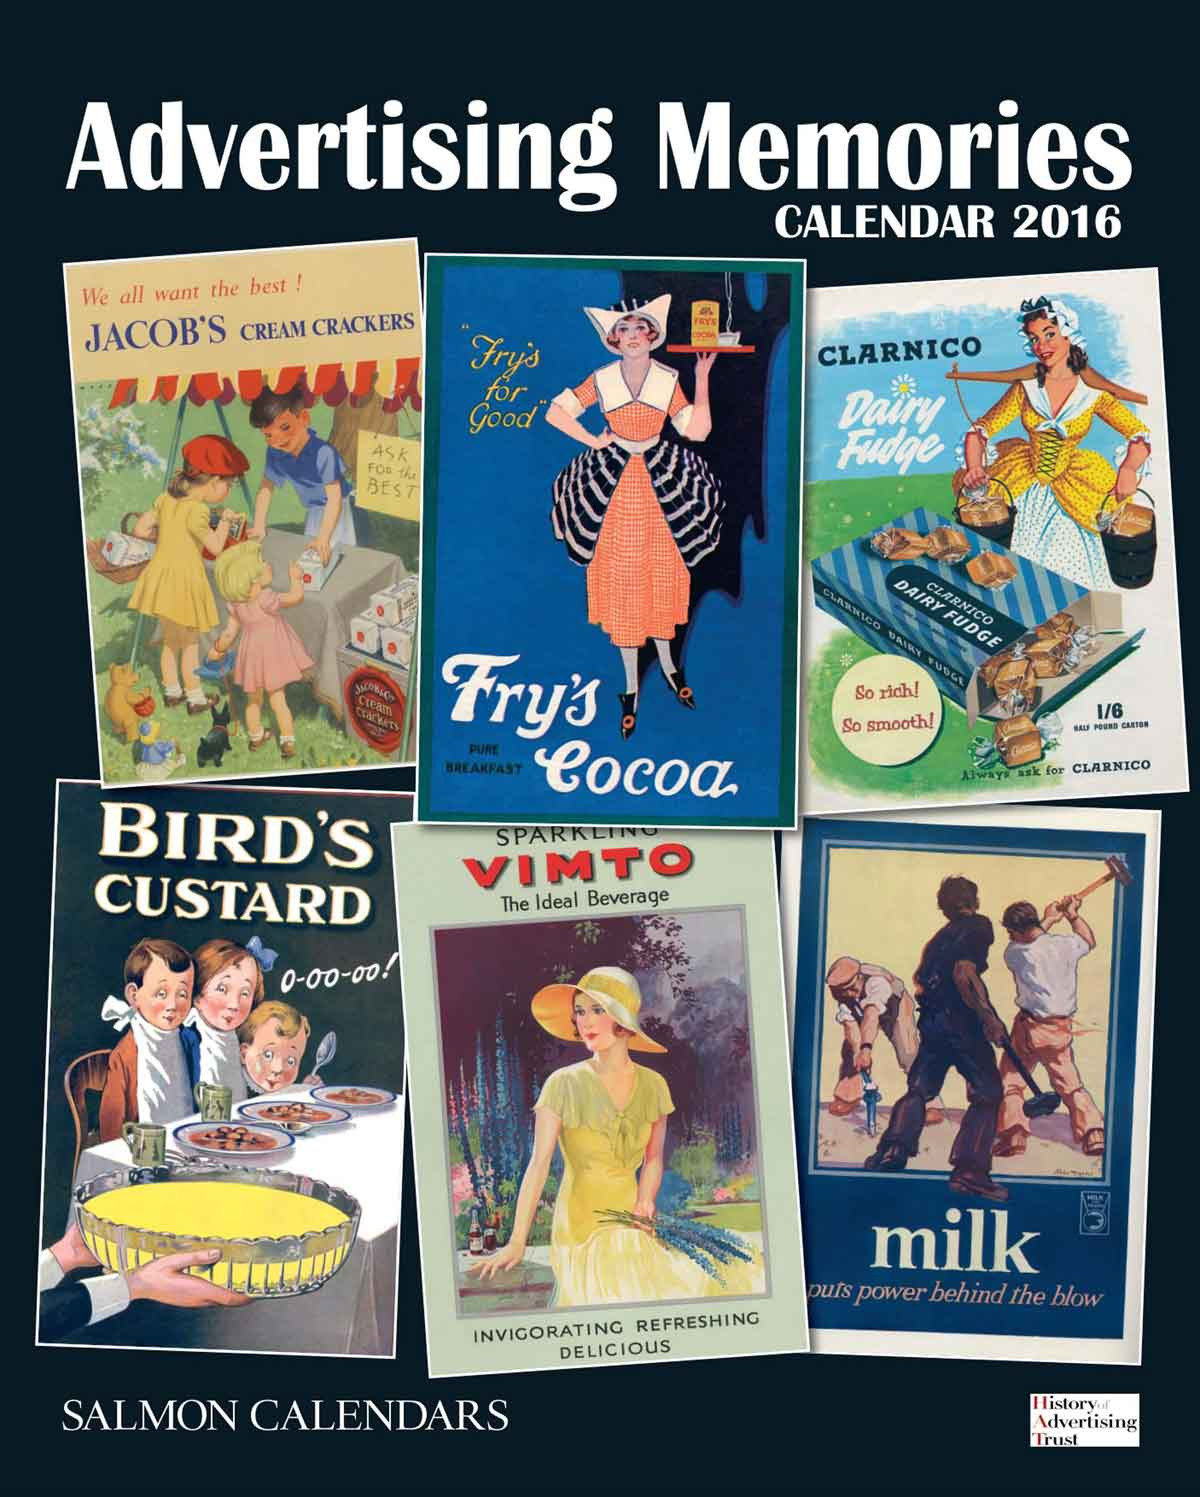 Advertising Memories Calendar 2016